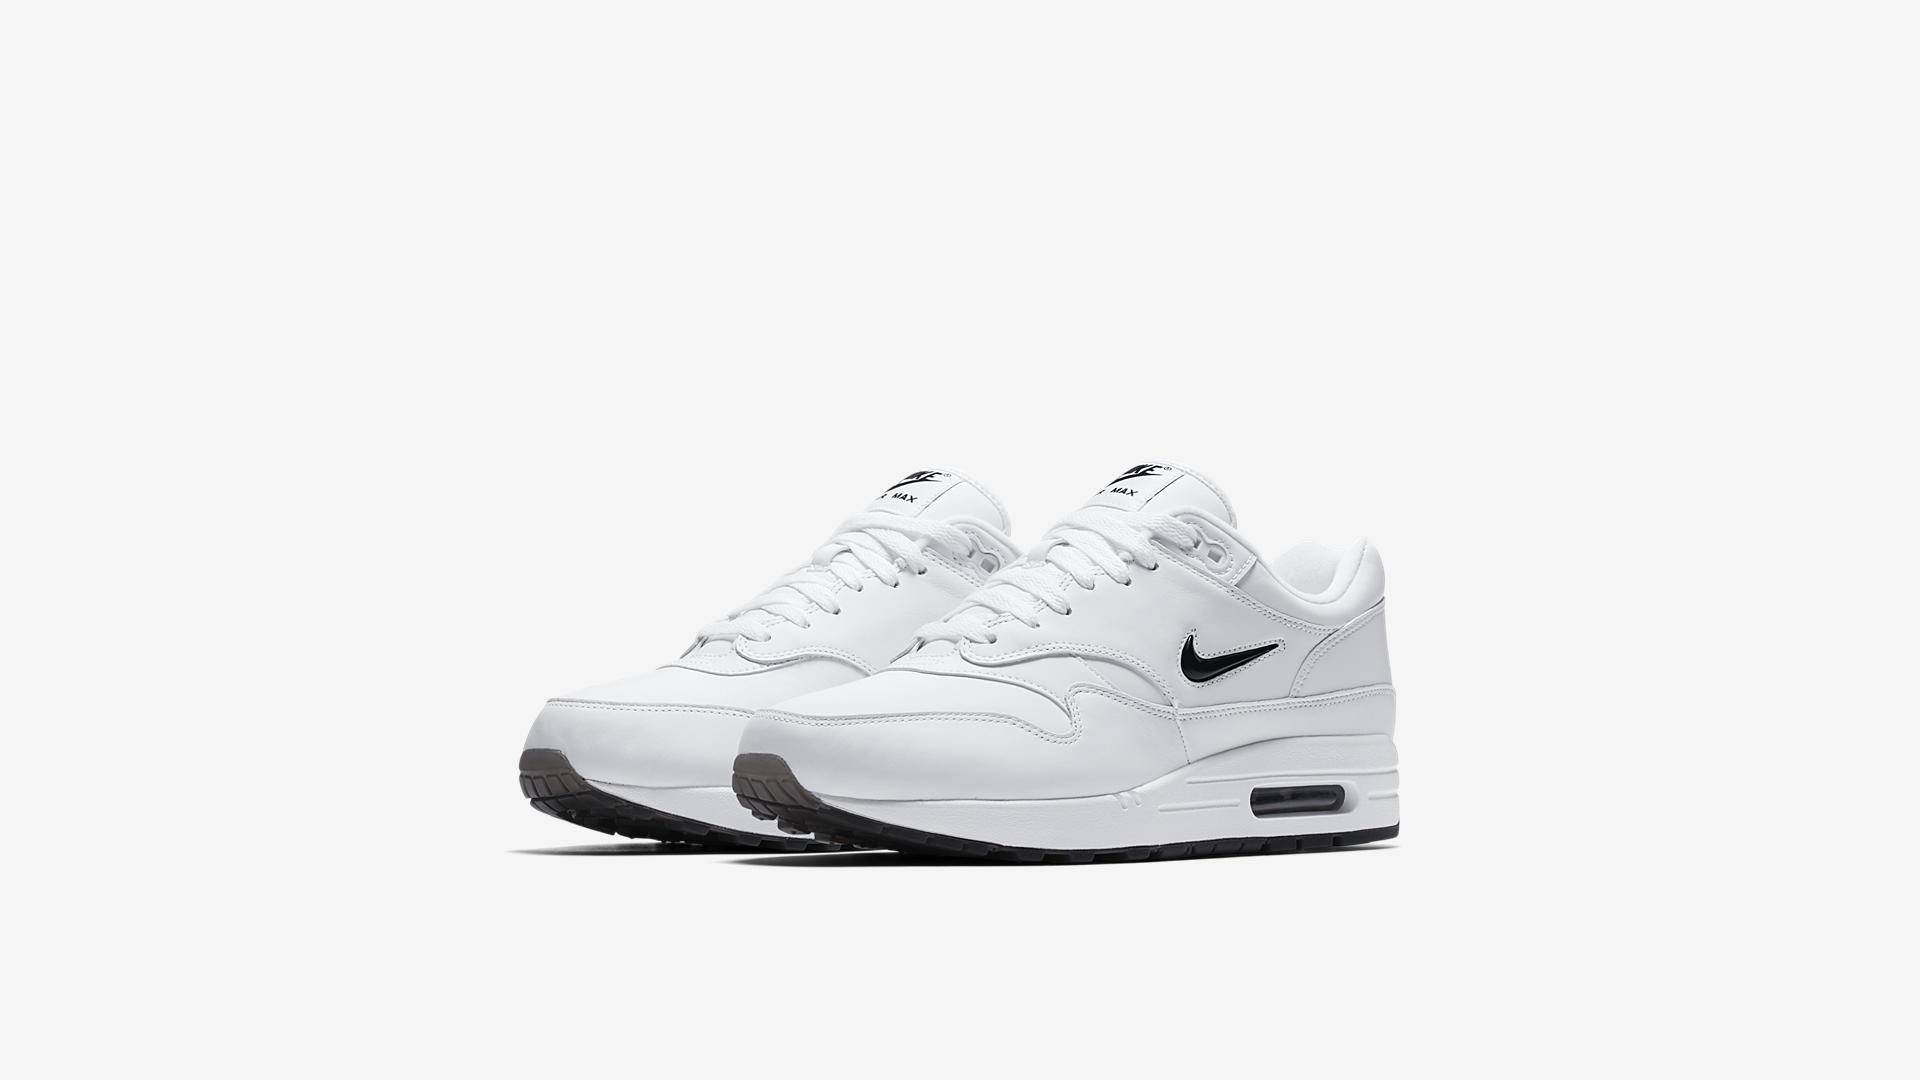 Nike Air Max 1 Jewel Black Diamond 918354 103 1